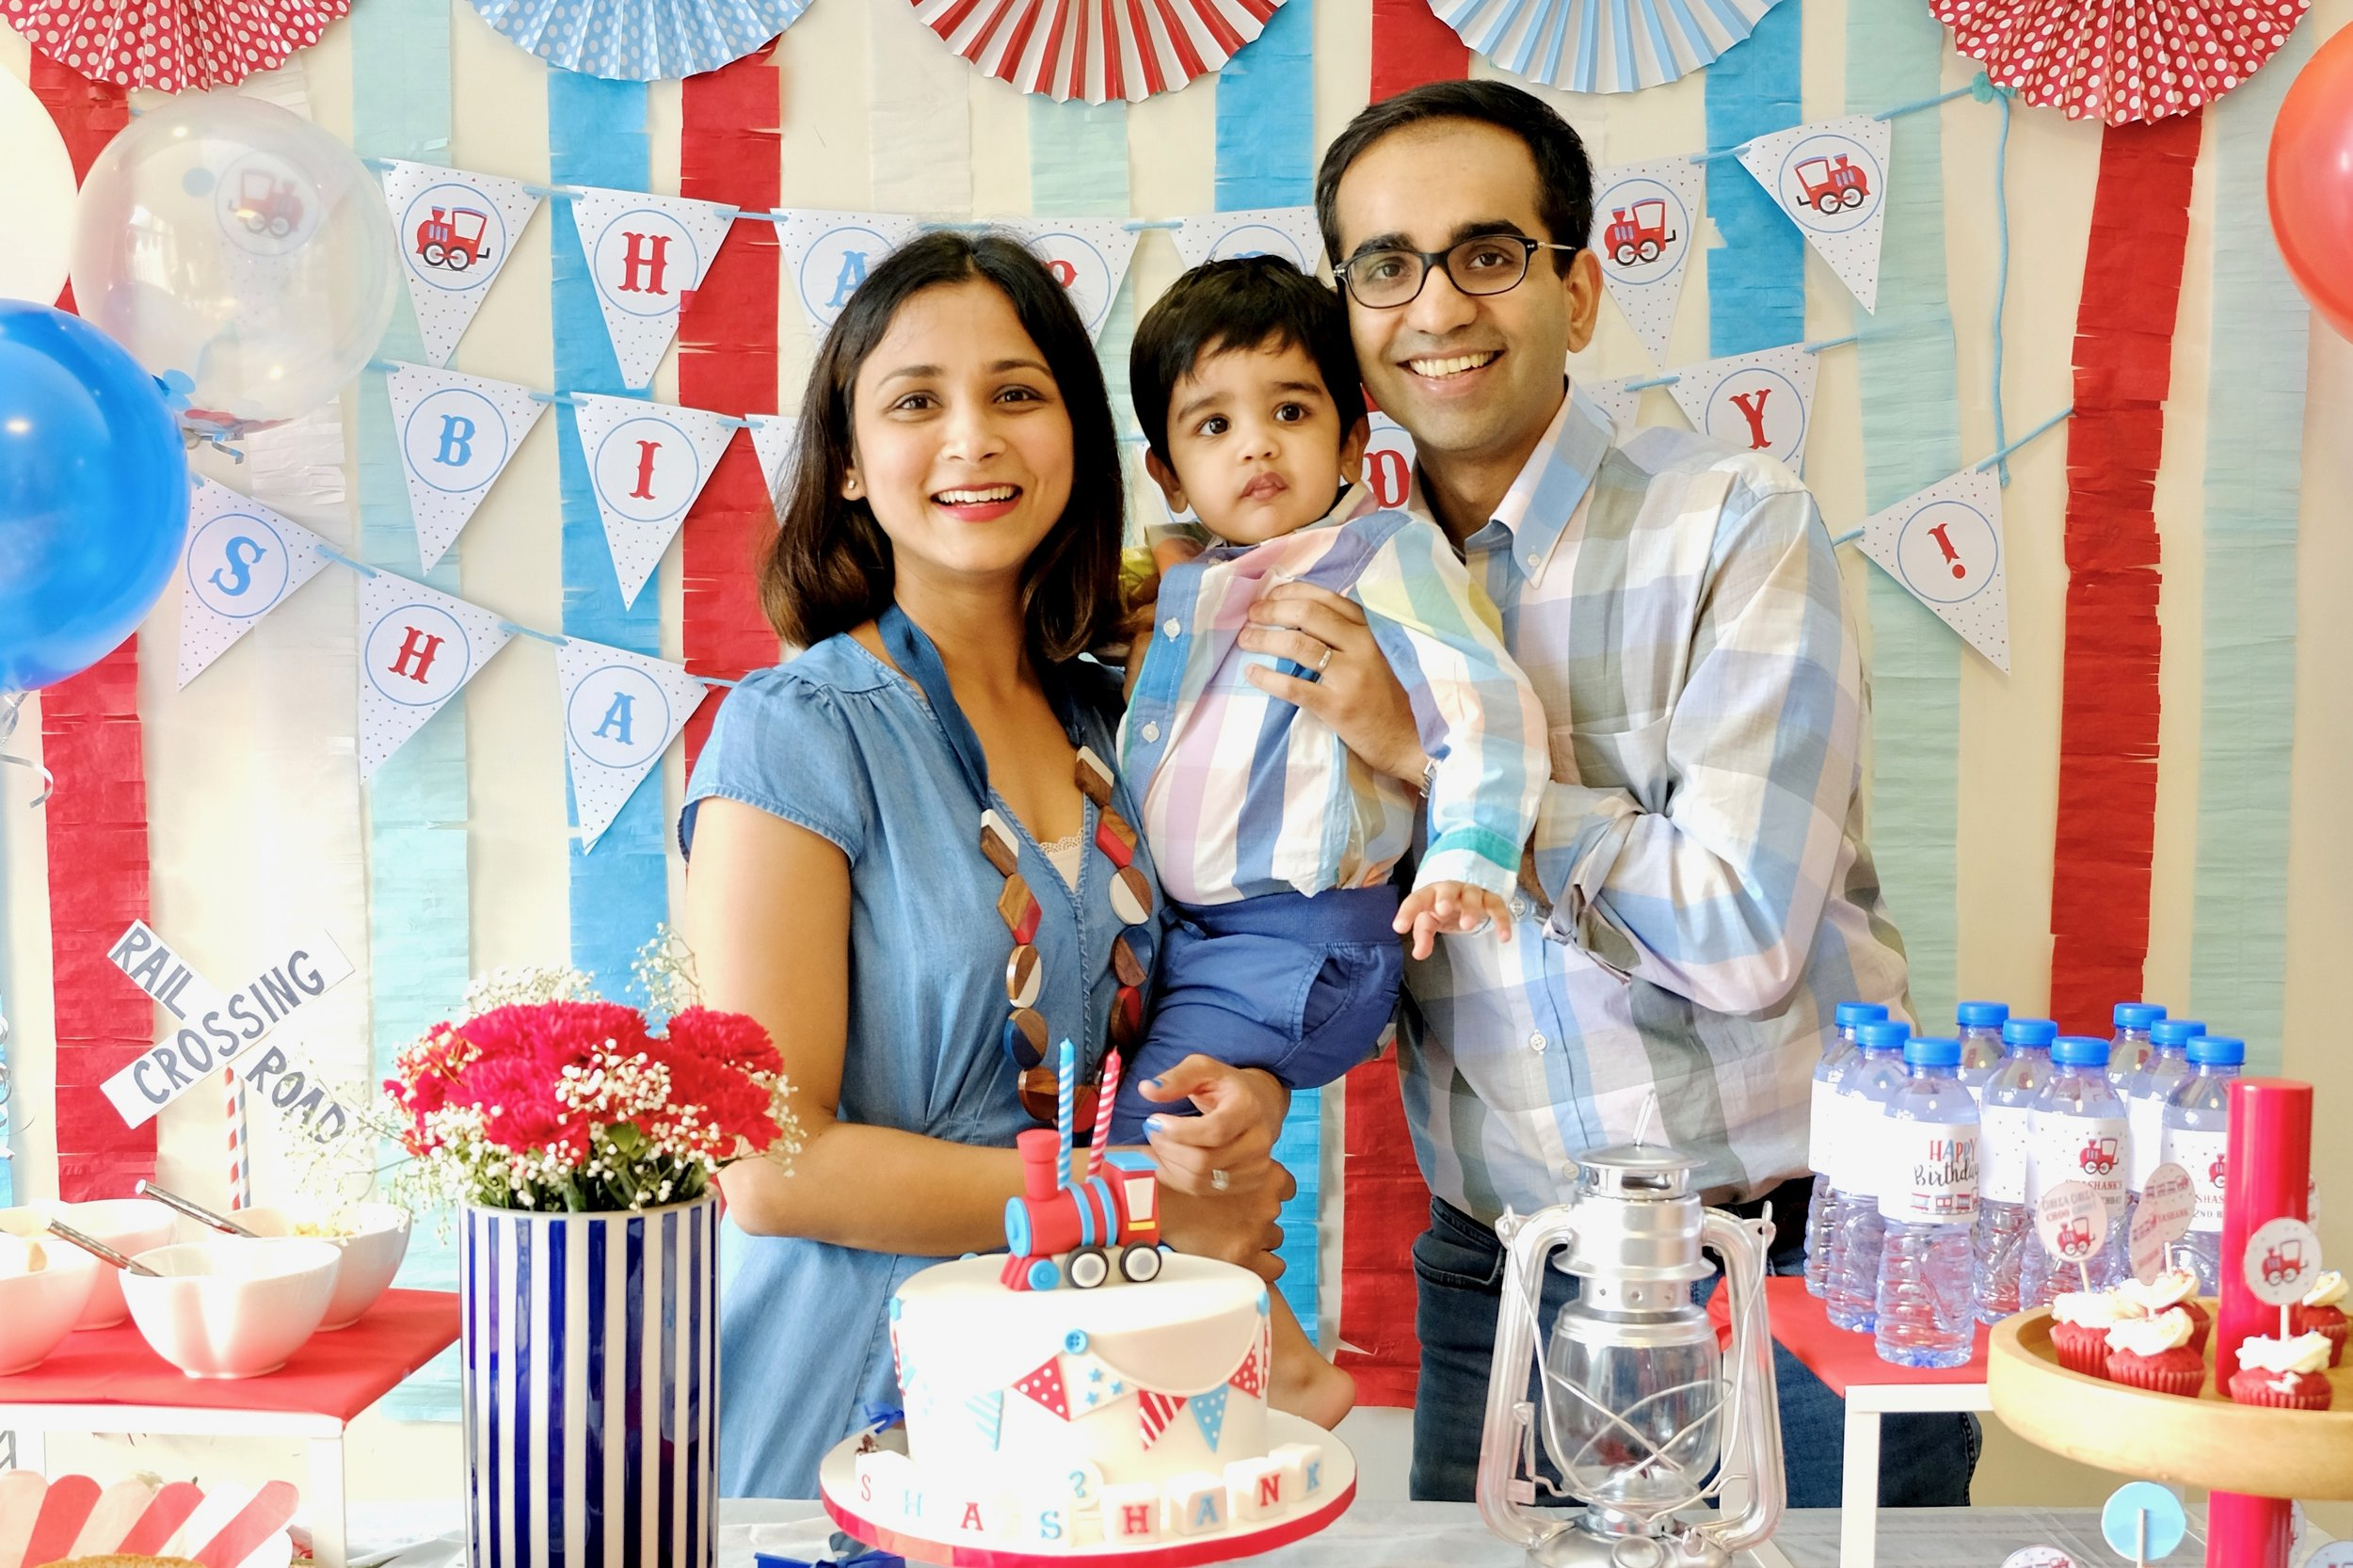 Choo Choo, Shashank is Turning 2! - Shashank's mom styled this wonderful party herself for this adorable little boy. We are in love with the little details and colors of this intimate gathering.